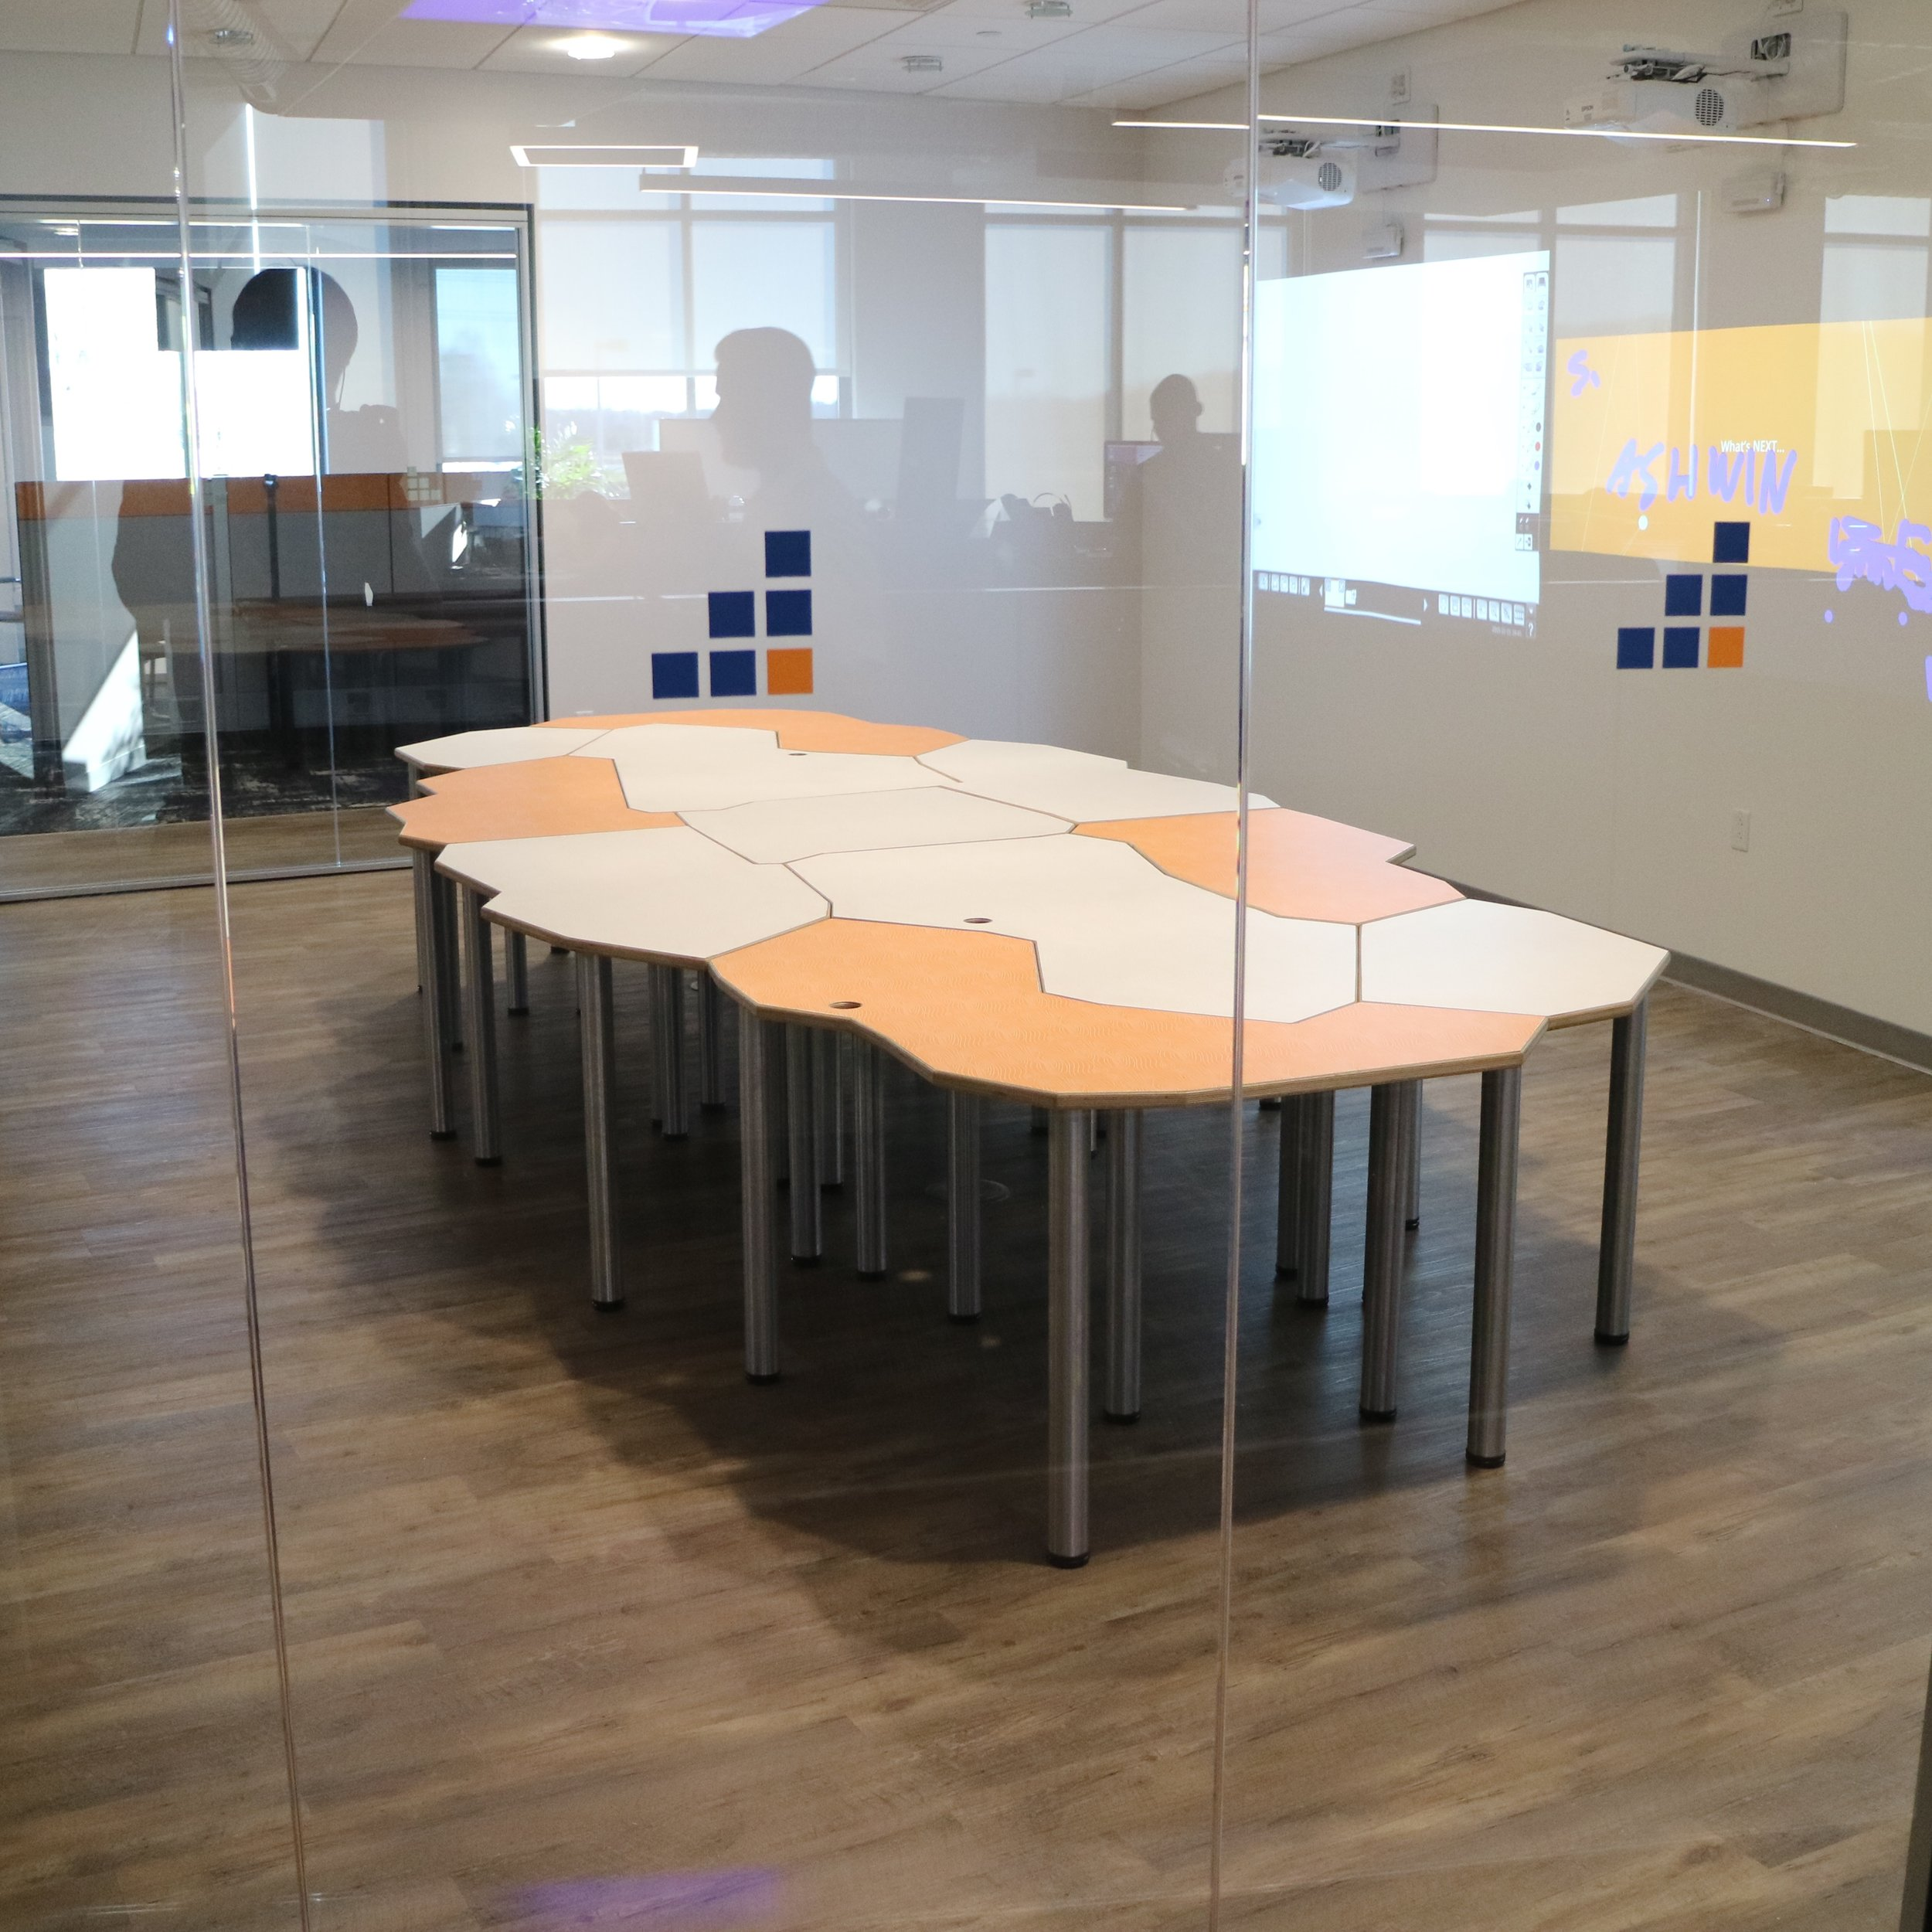 Tesselation Table — 44 legs, 11 reconfigurable tables for individual or small group use or as one large conference table